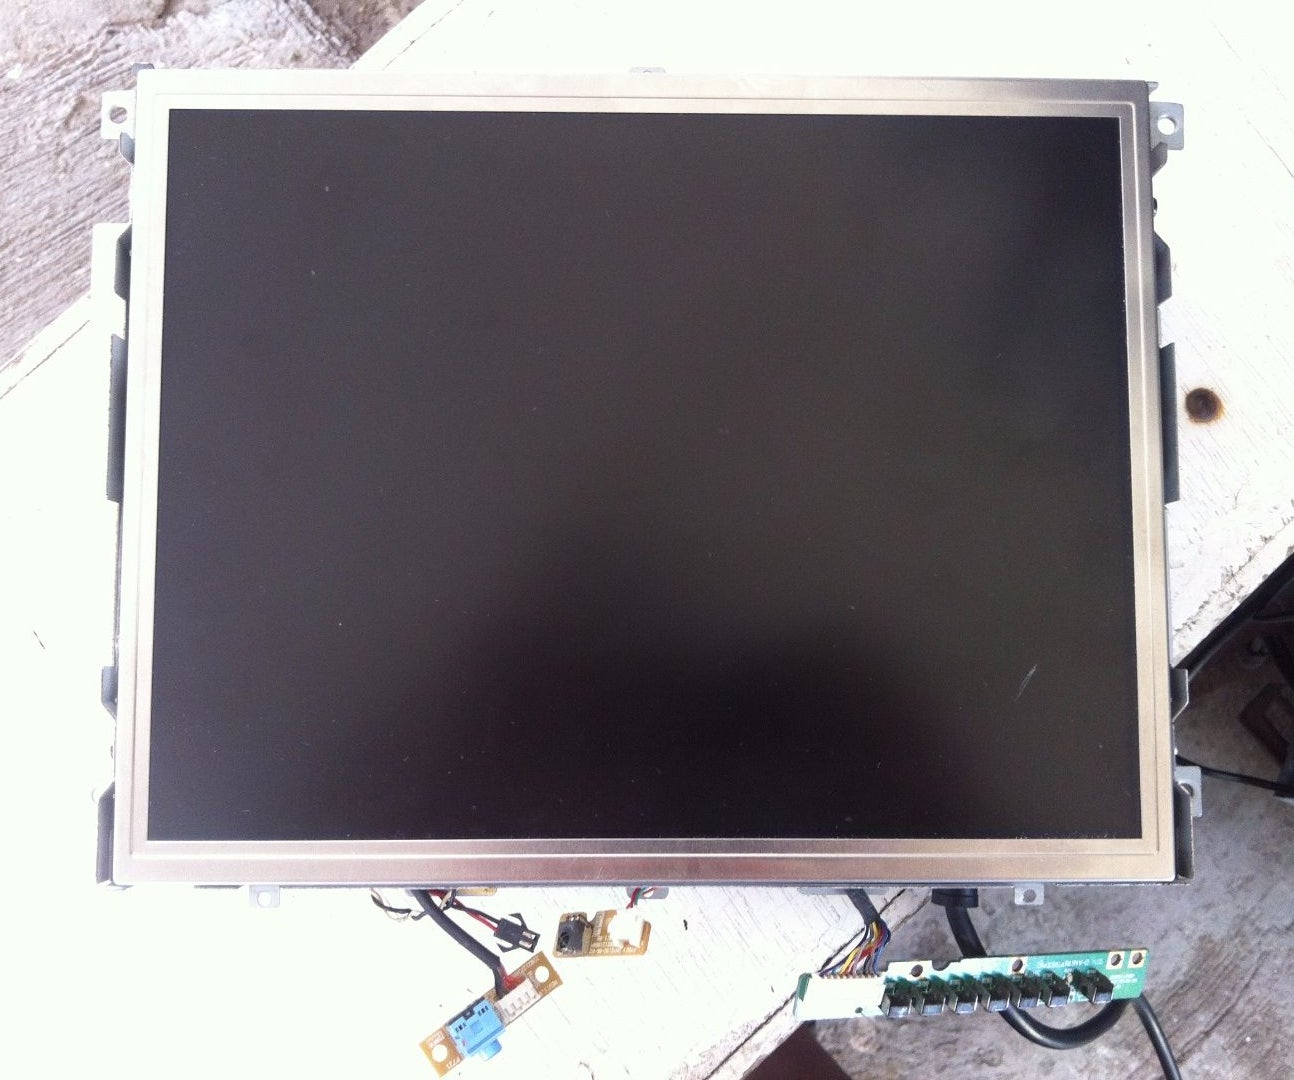 Lcd Tv Backlight Repair From Ccfl To Led 8 Steps With Pictures Circuitboardforlcdledtvtvjpg